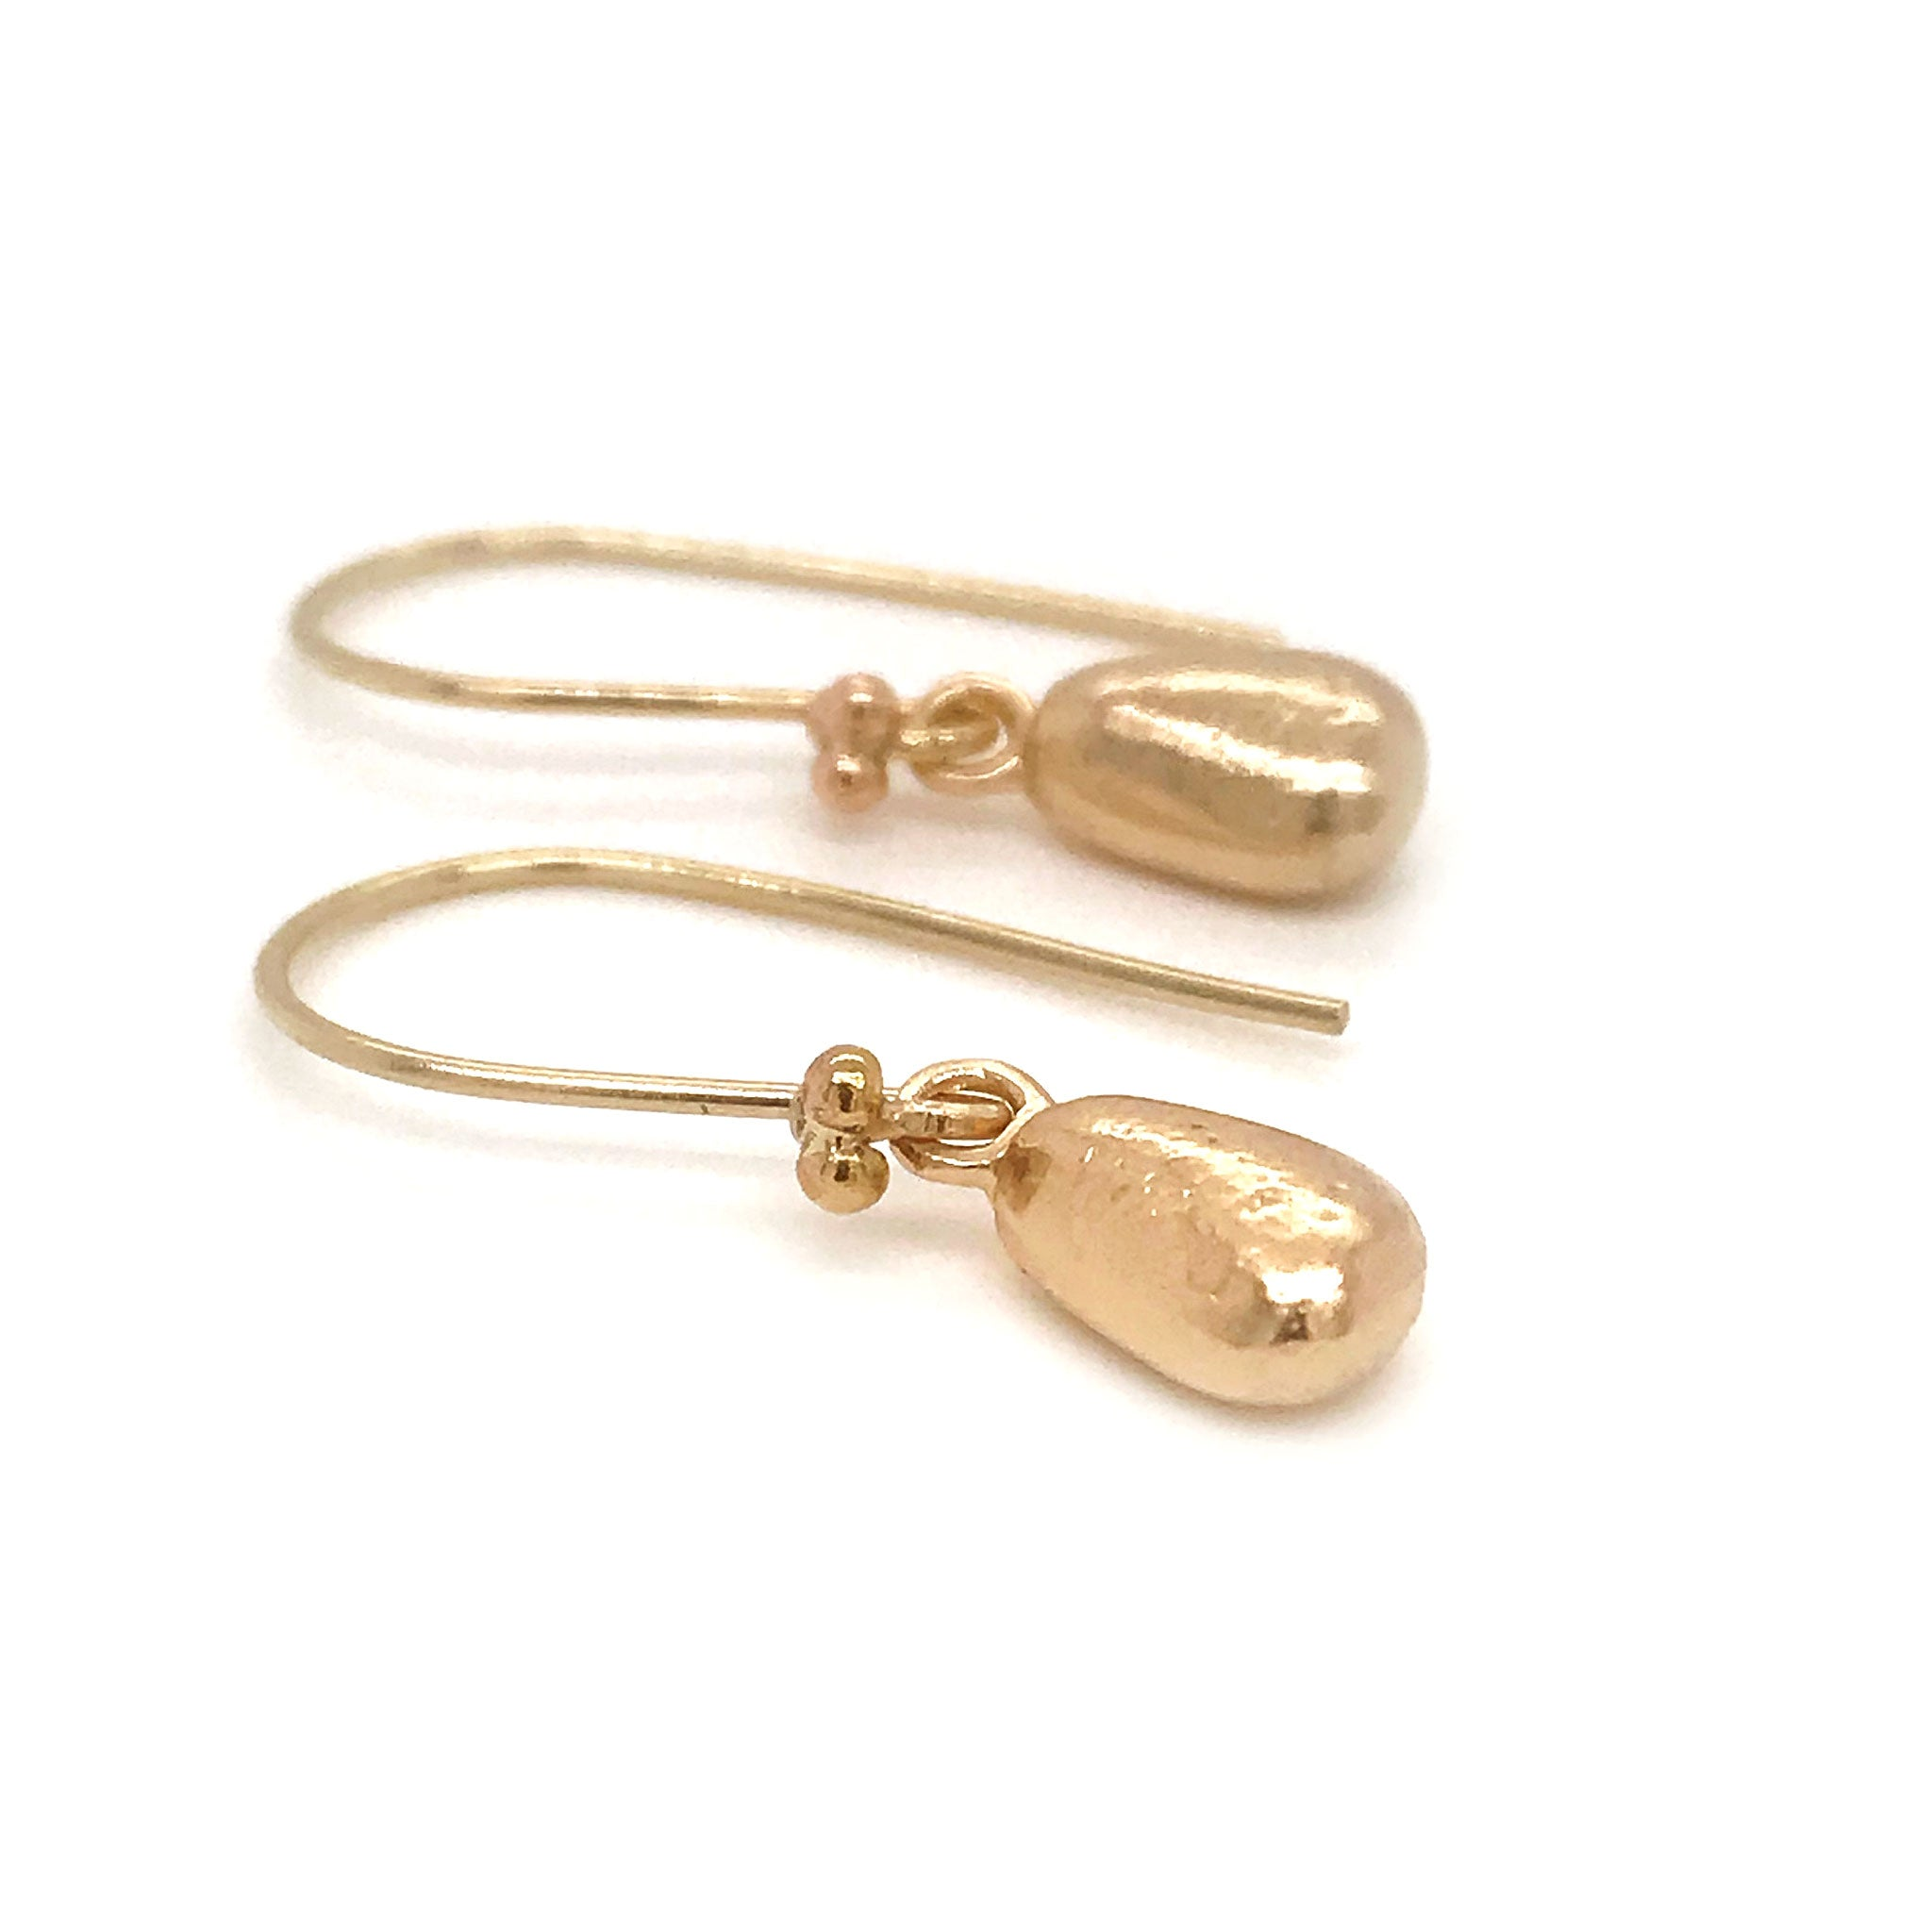 gold earrings with solid 14k gold charms kriket broadhurst jewellery